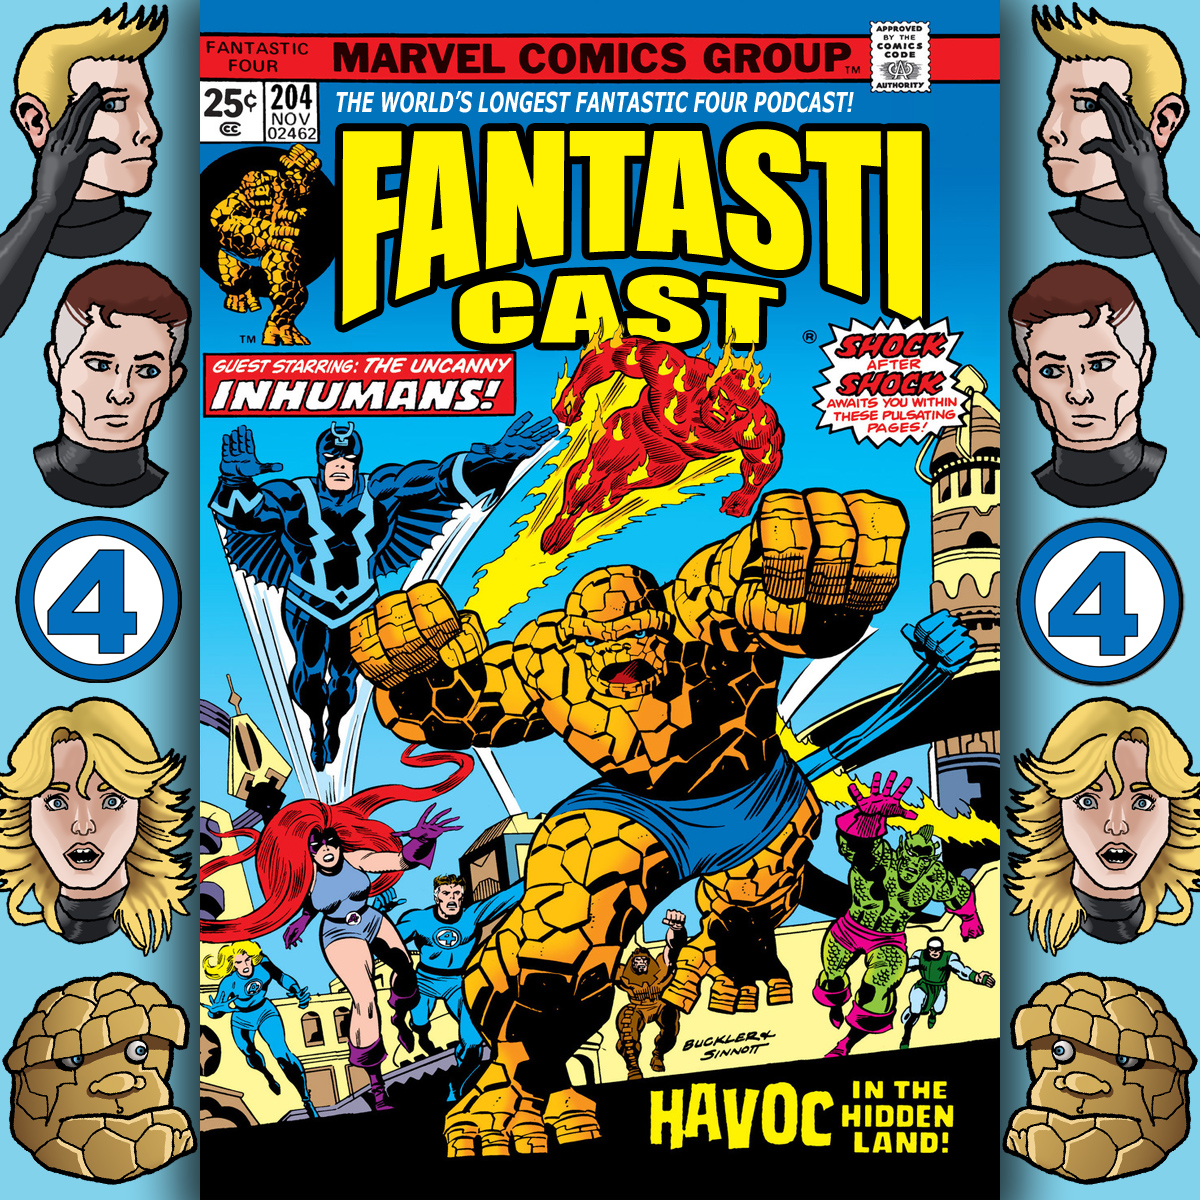 The Fantasticast